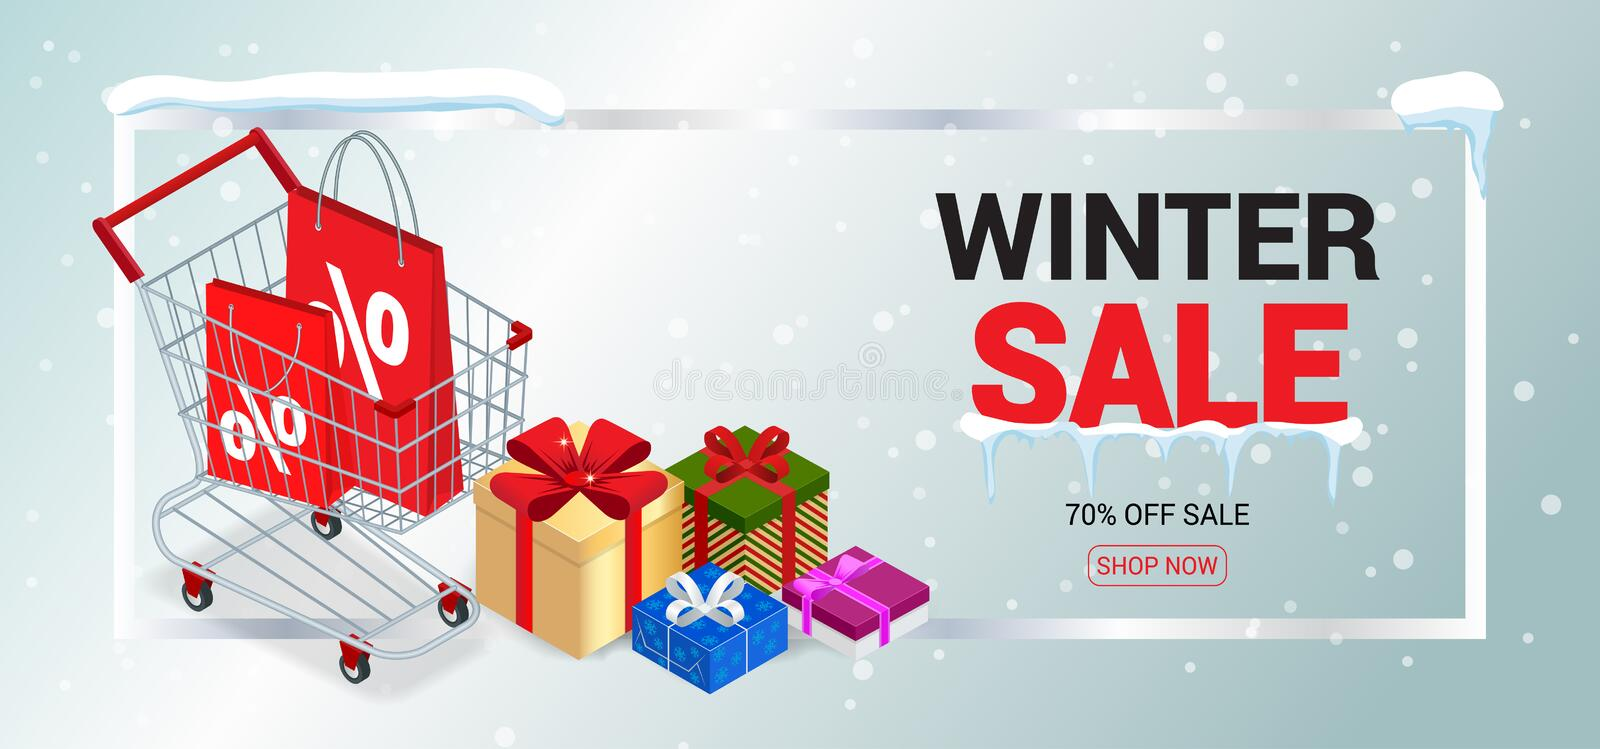 winter sale card or banner discount offer price label